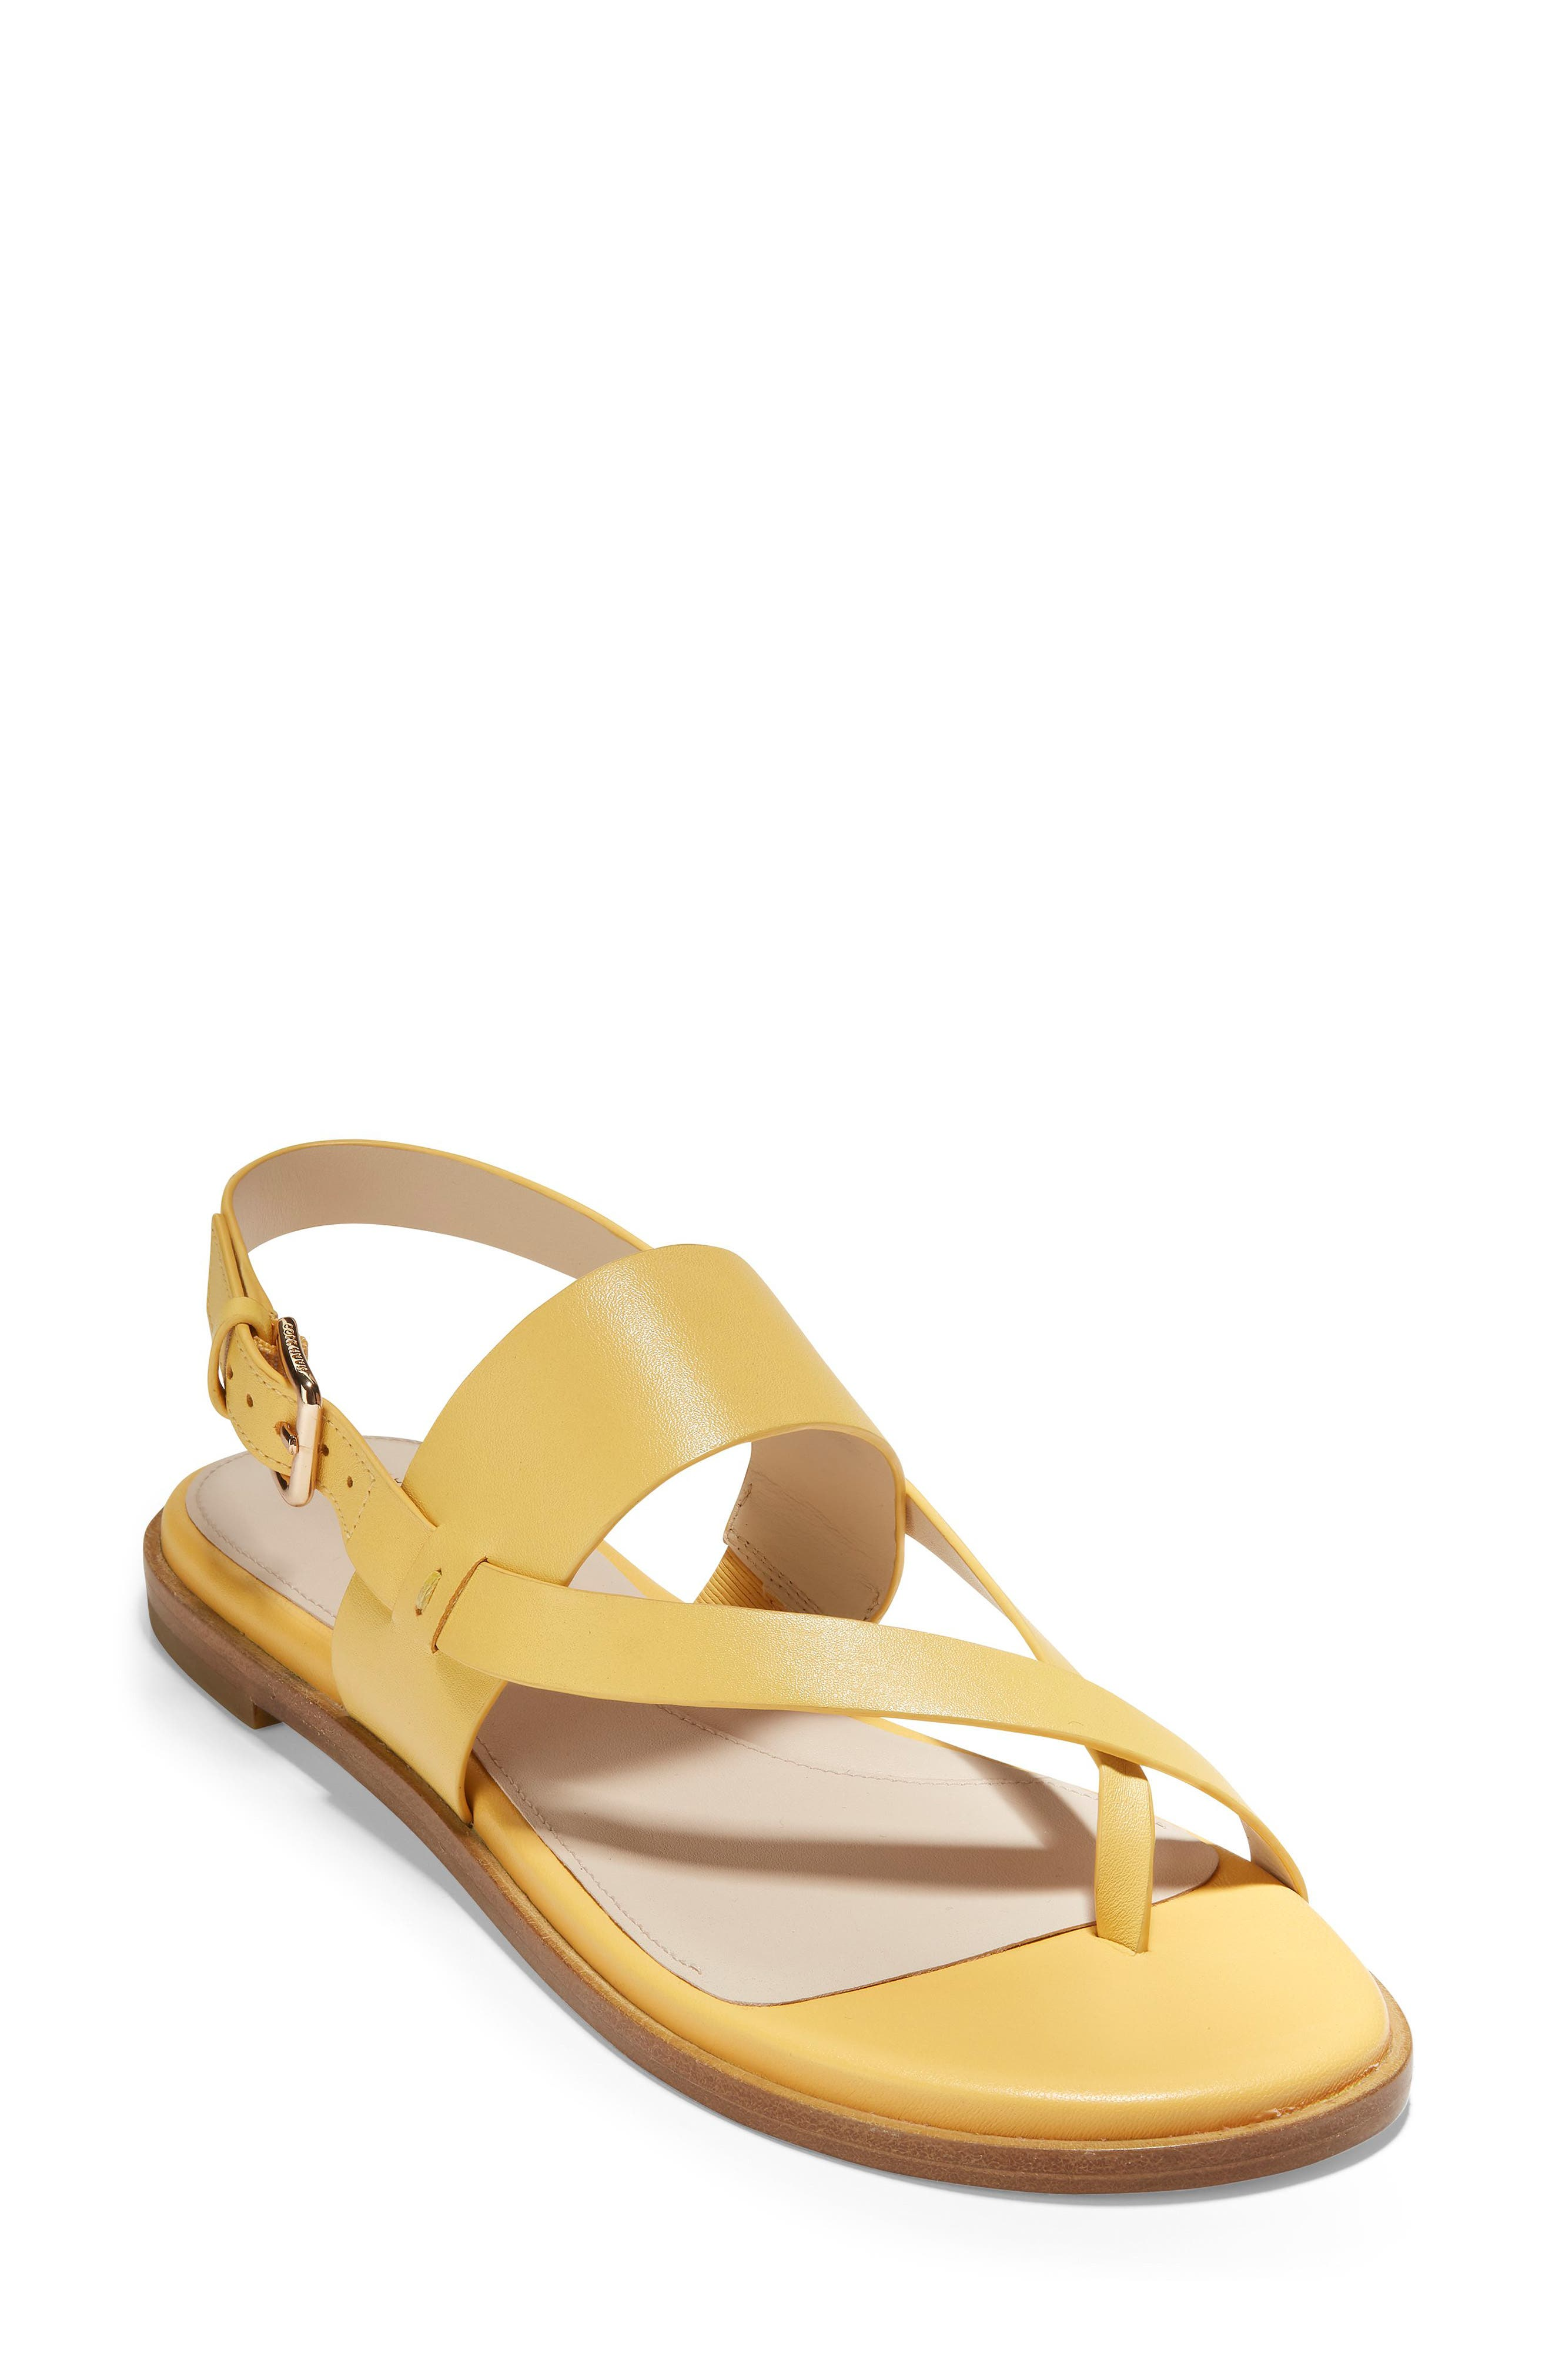 COLE HAAN, Anica Sandal, Main thumbnail 1, color, SUNSET GOLD LEATHER